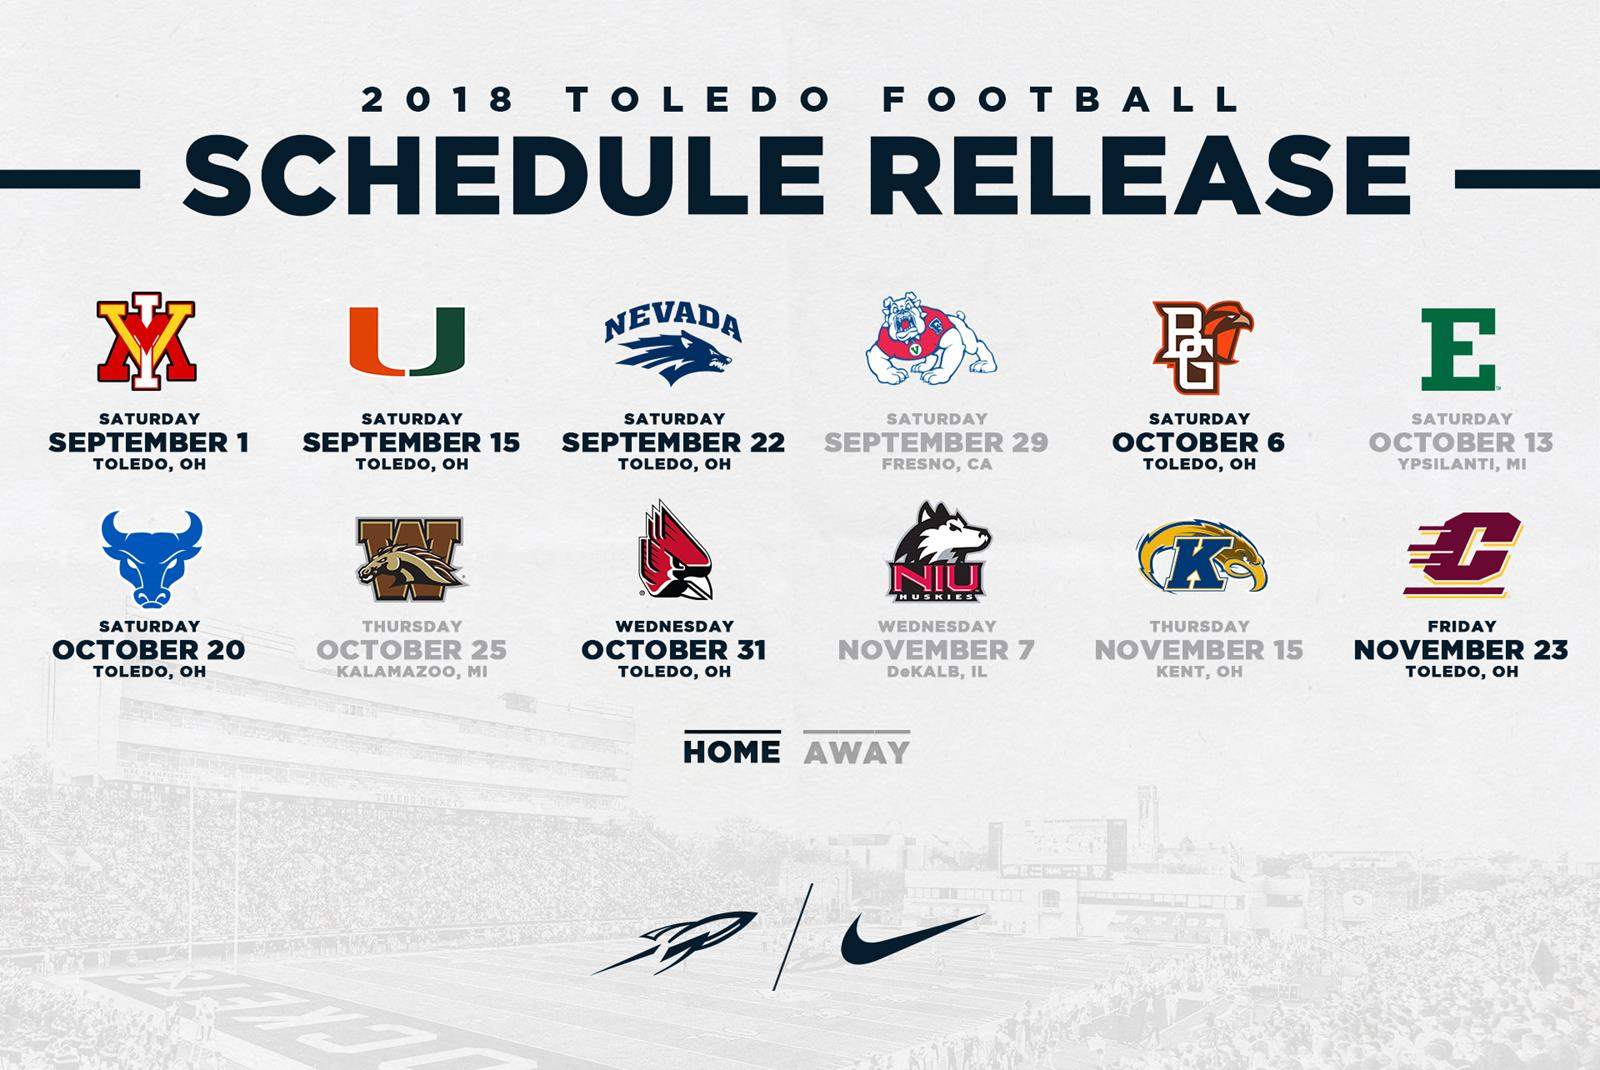 Bgsu Football Schedule 2019 Toledo's 2018 Football Schedule Features Seven Home Games